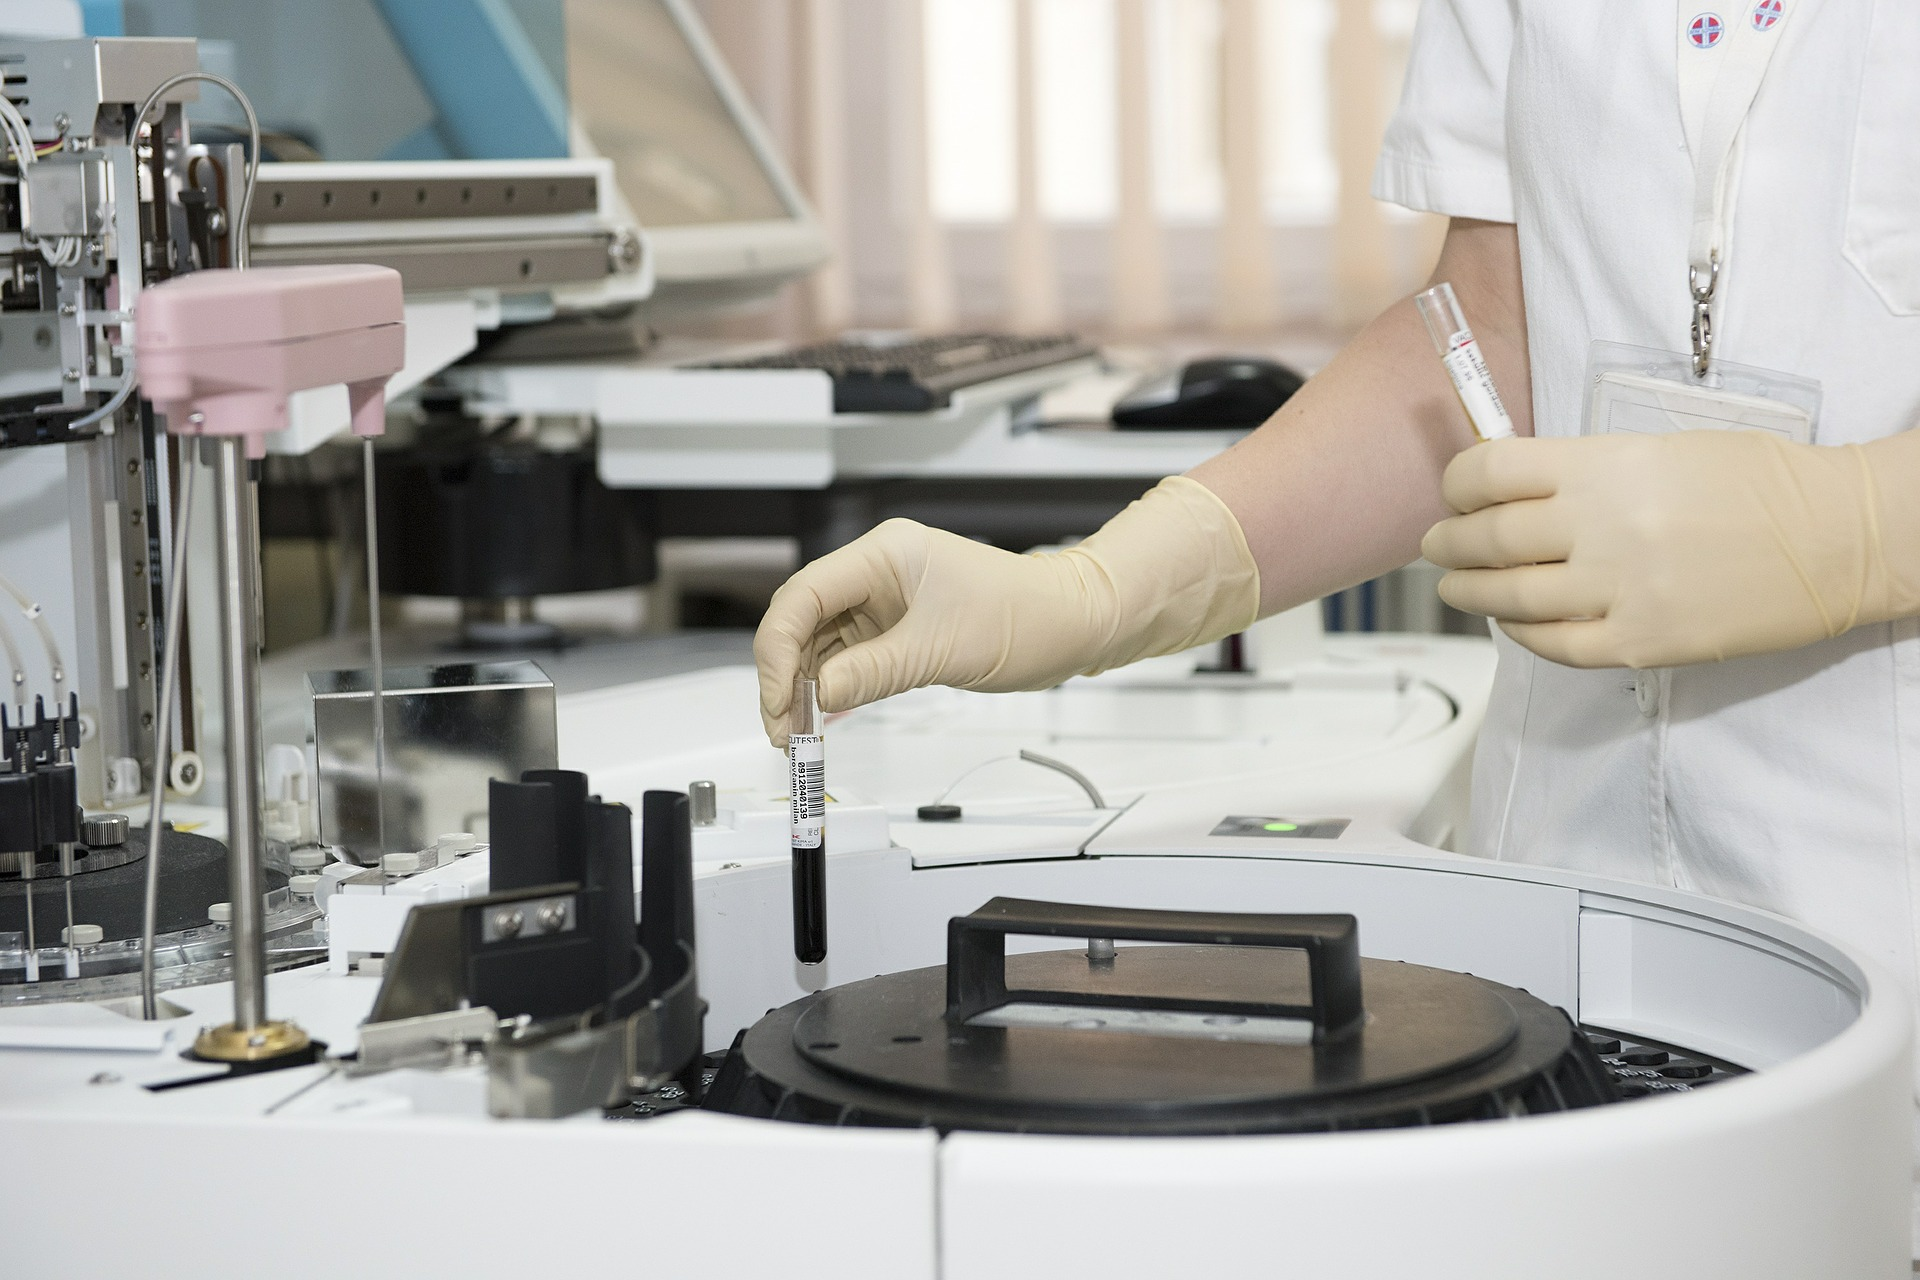 A lab assistant places test tubes containing liquid into a centrifuge